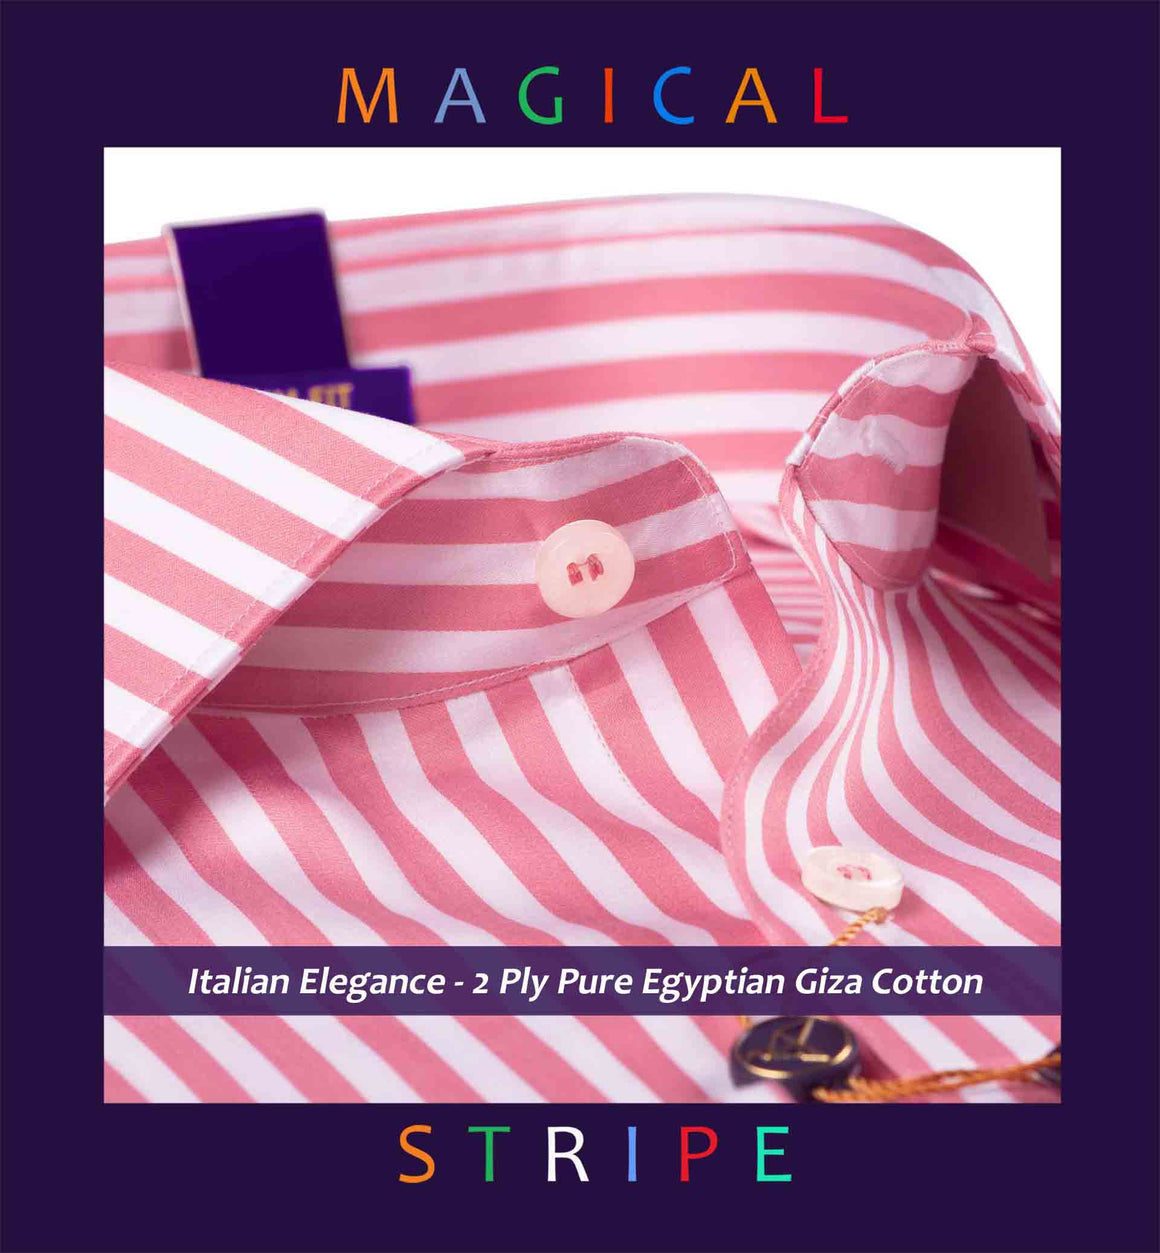 Condamine- Carnation Pink & White Magical Stripe